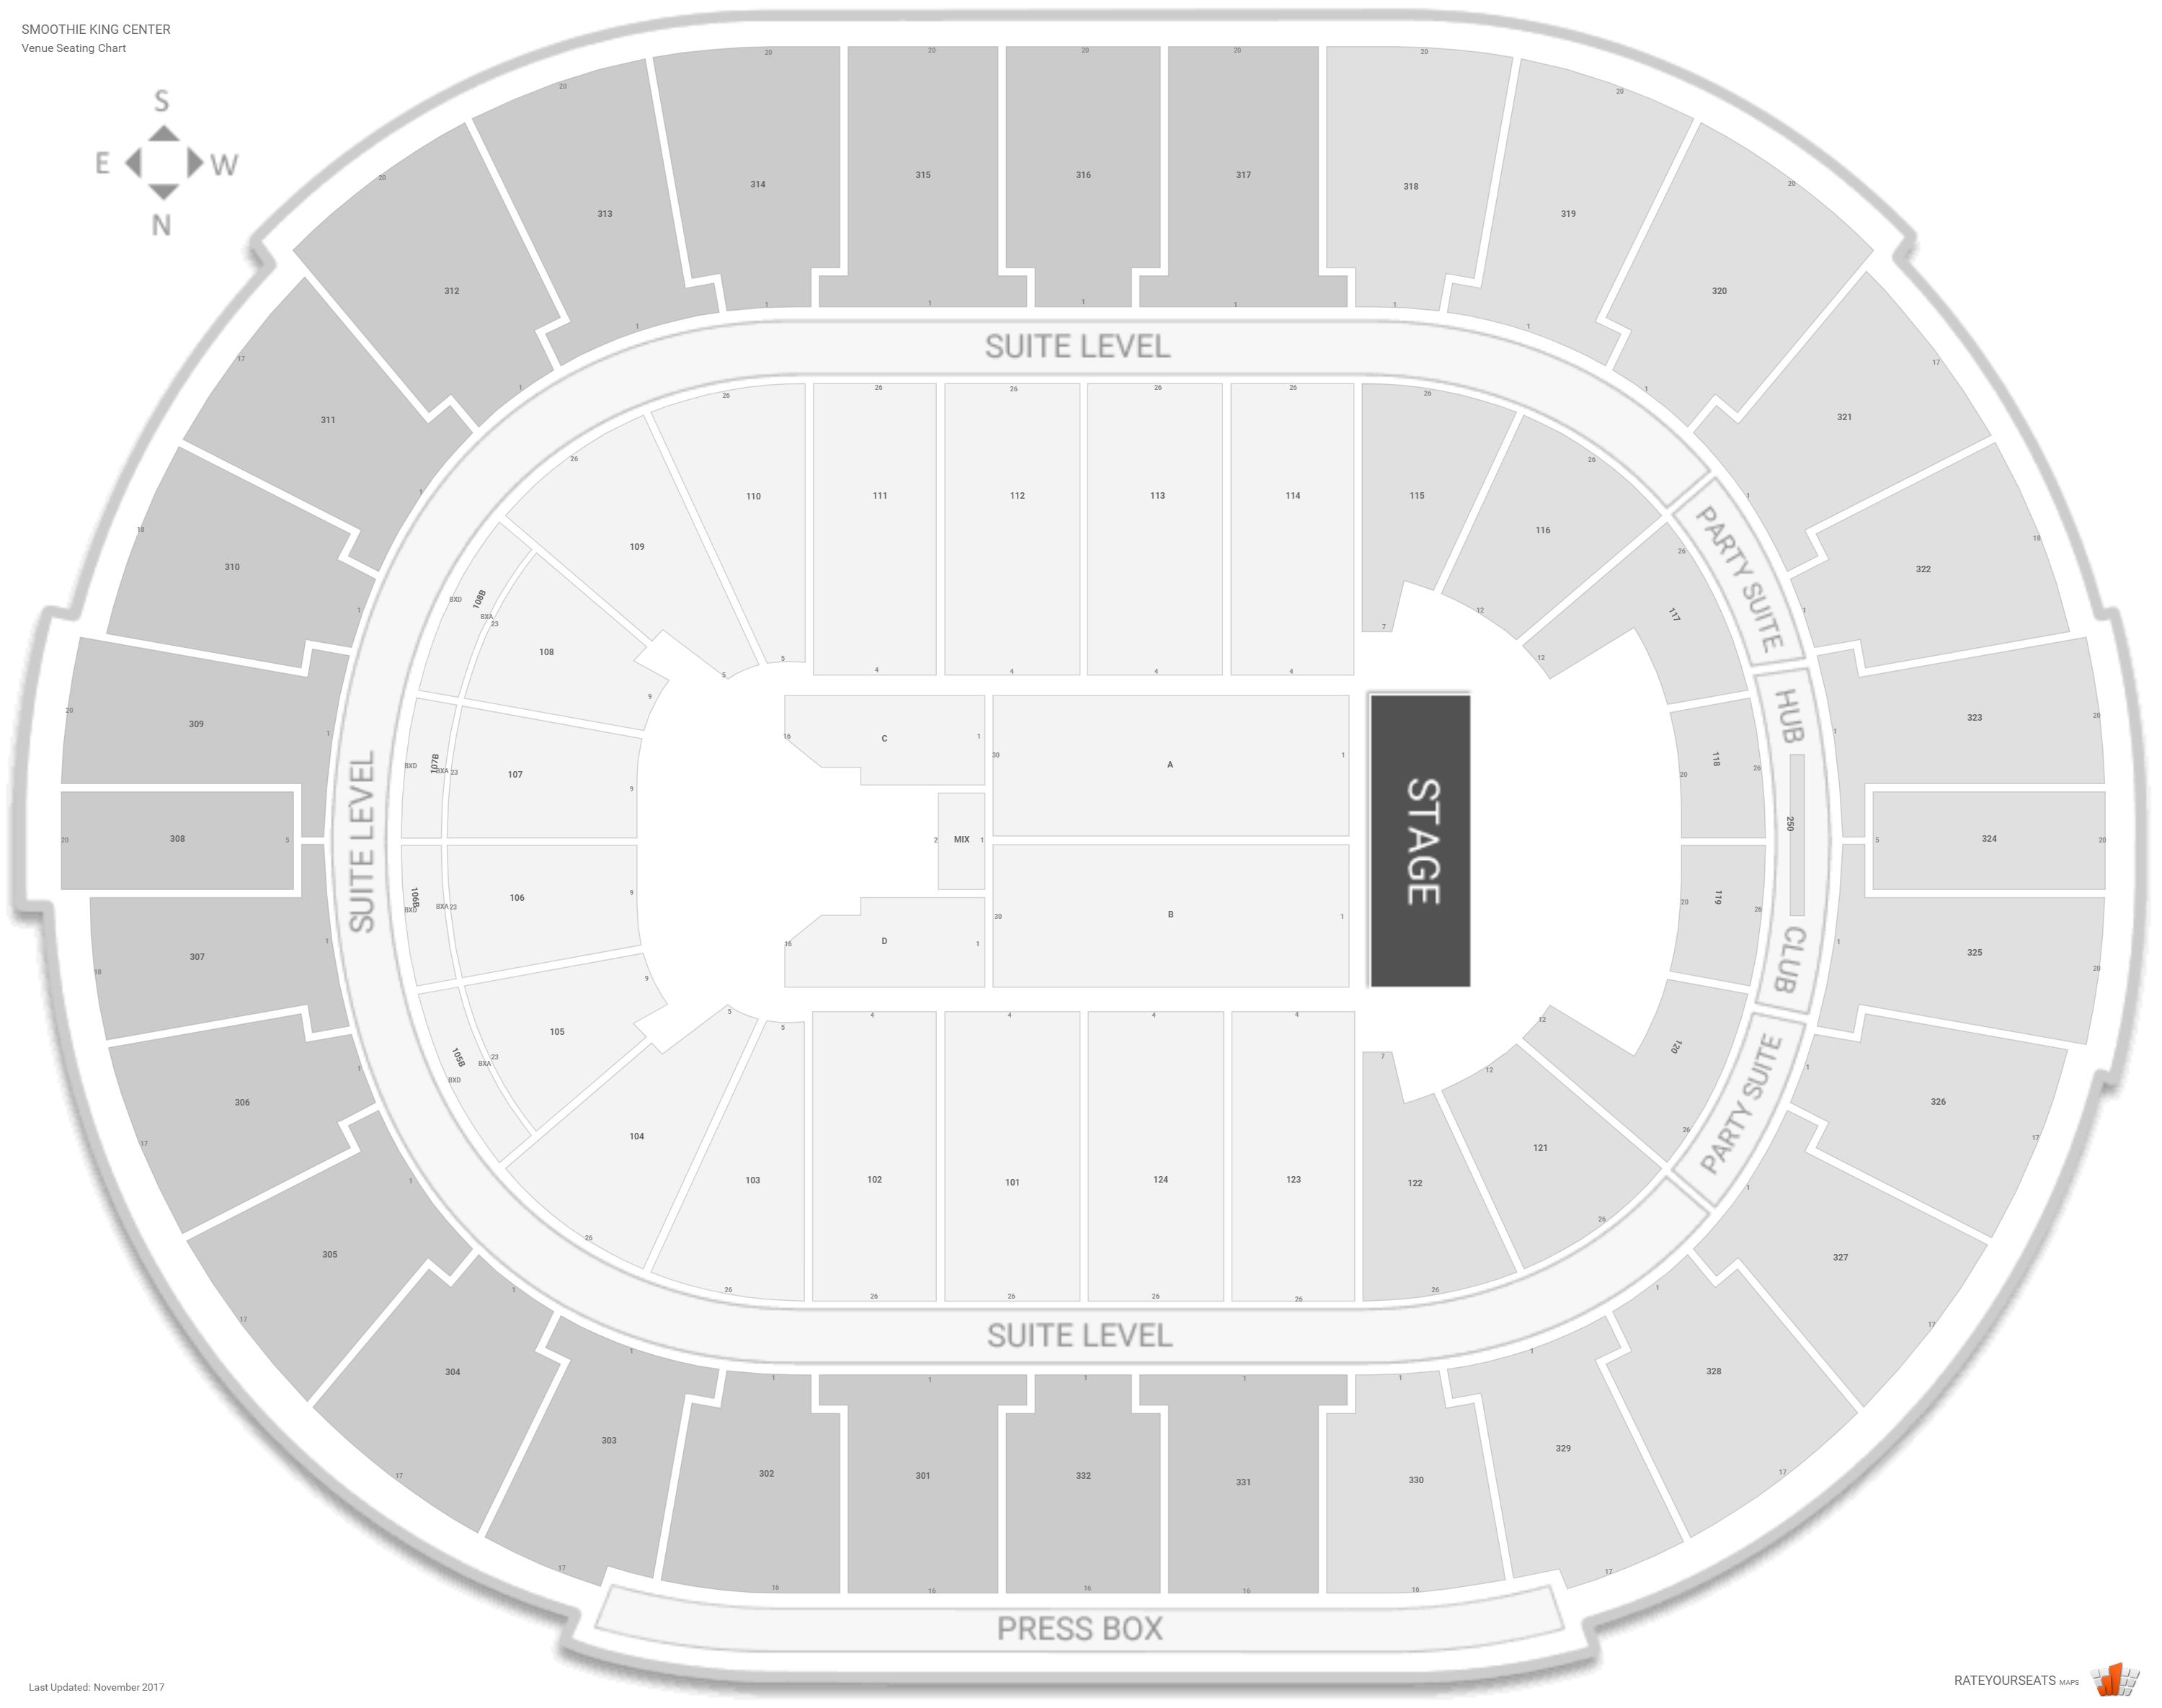 Smoothie King Center Seating Chart With Row Numbers